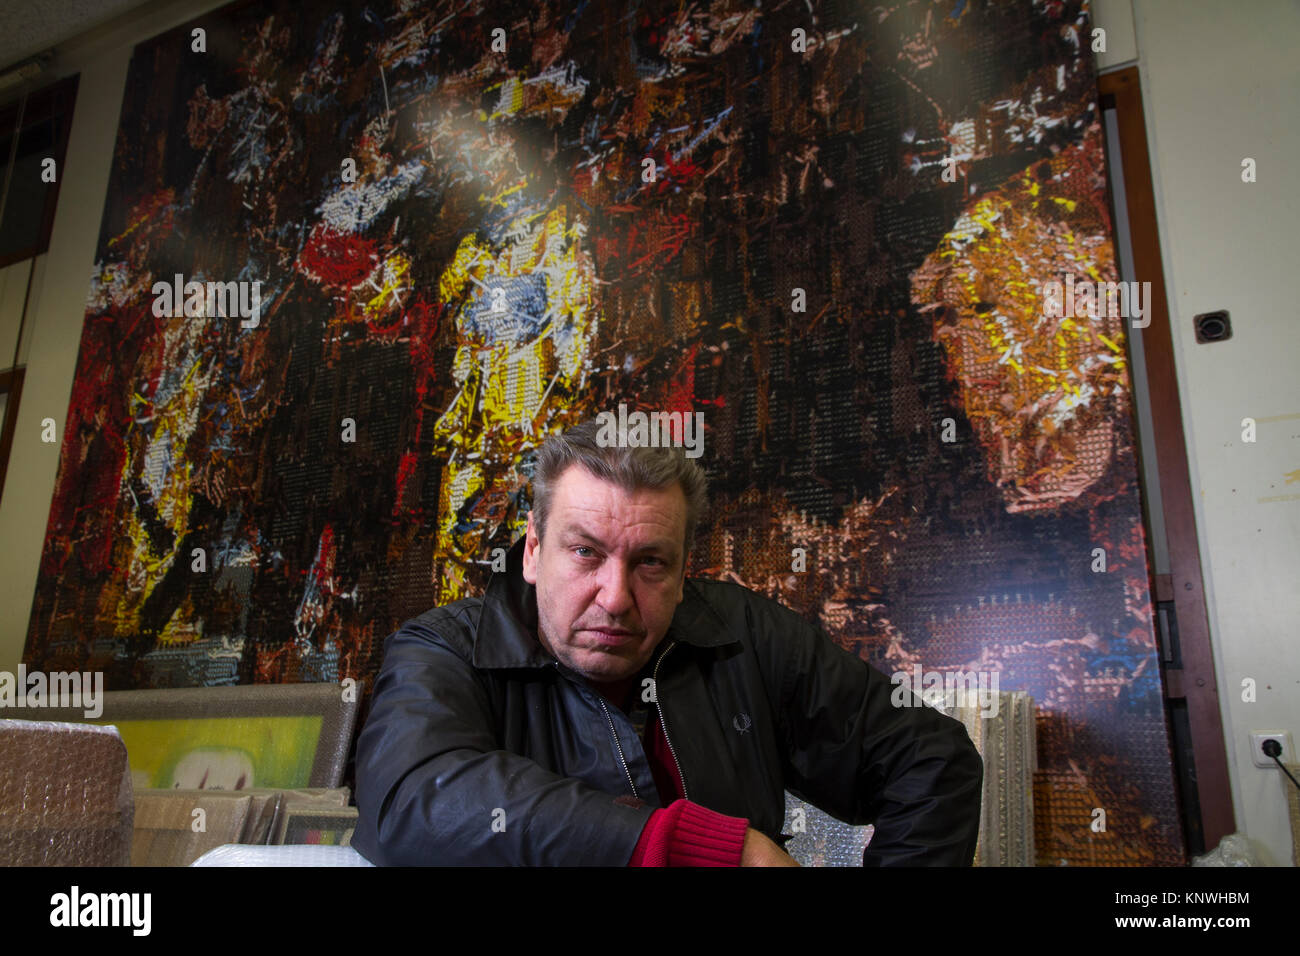 Portrait of Dutch artist Rob Scholte in his studio. - Stock Image